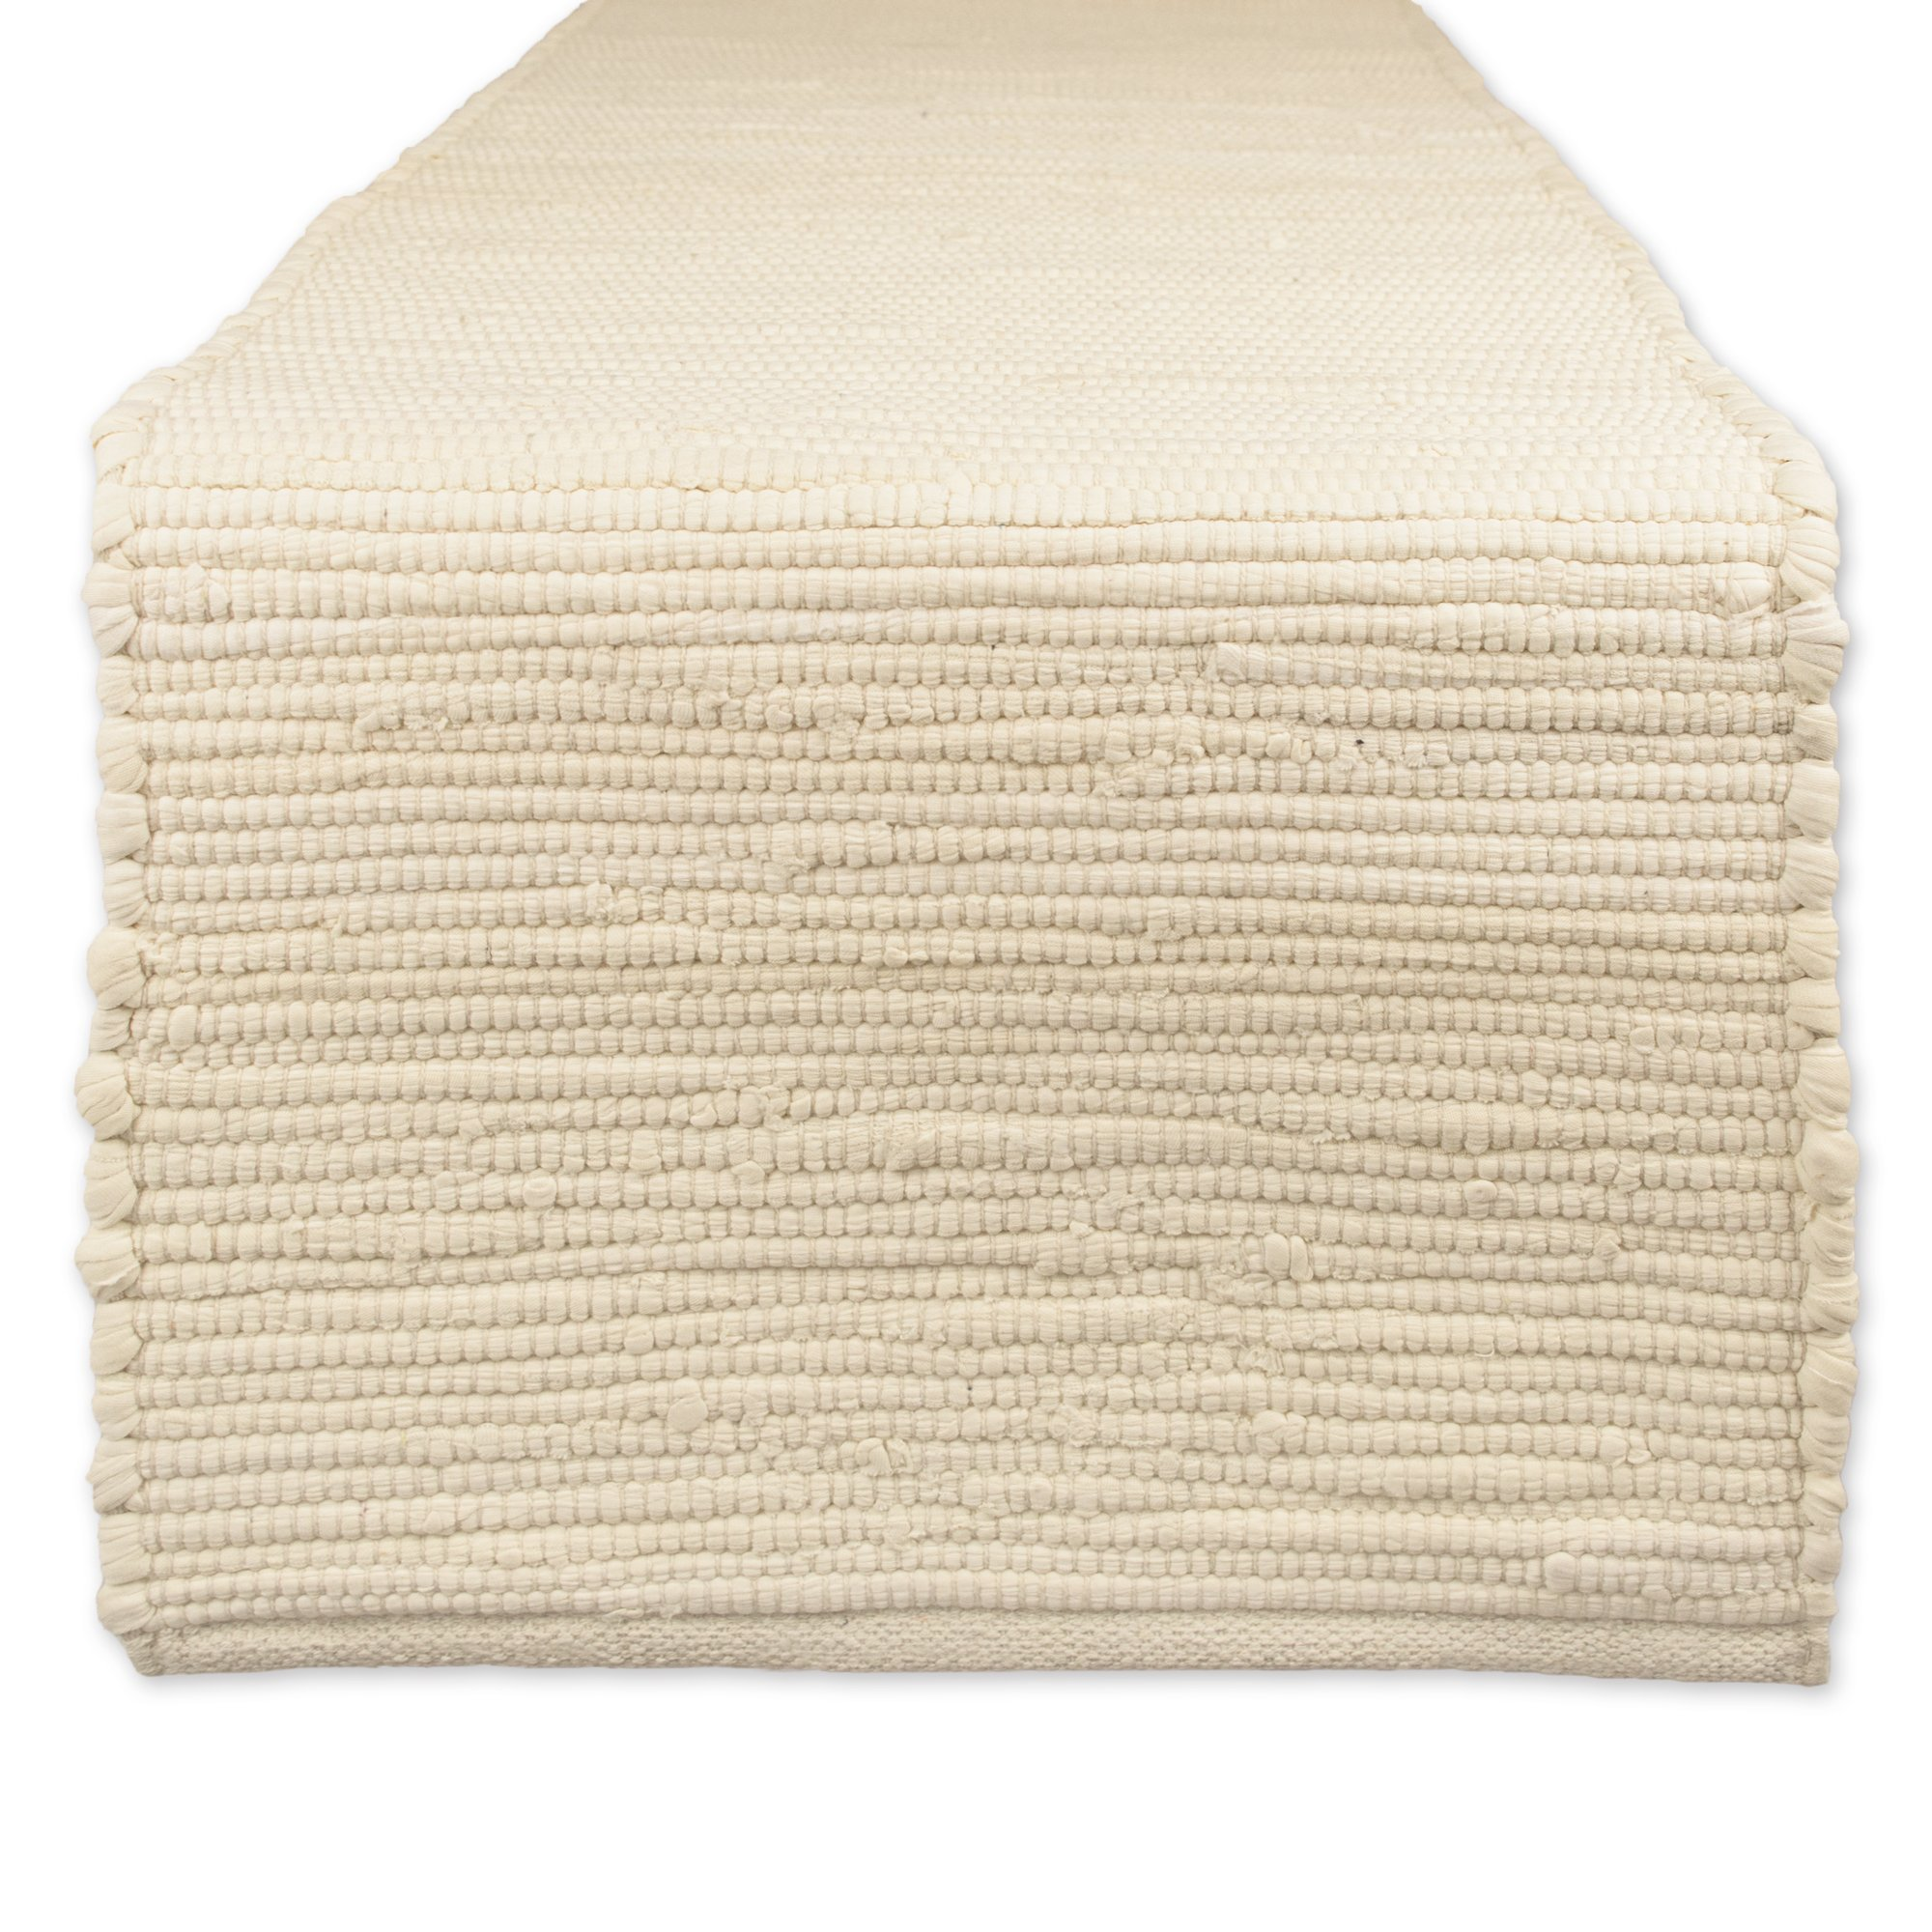 DII Cotton Everyday Machine Washable Chindi Rag Table Runner, 14 X 72'', Natural by DII